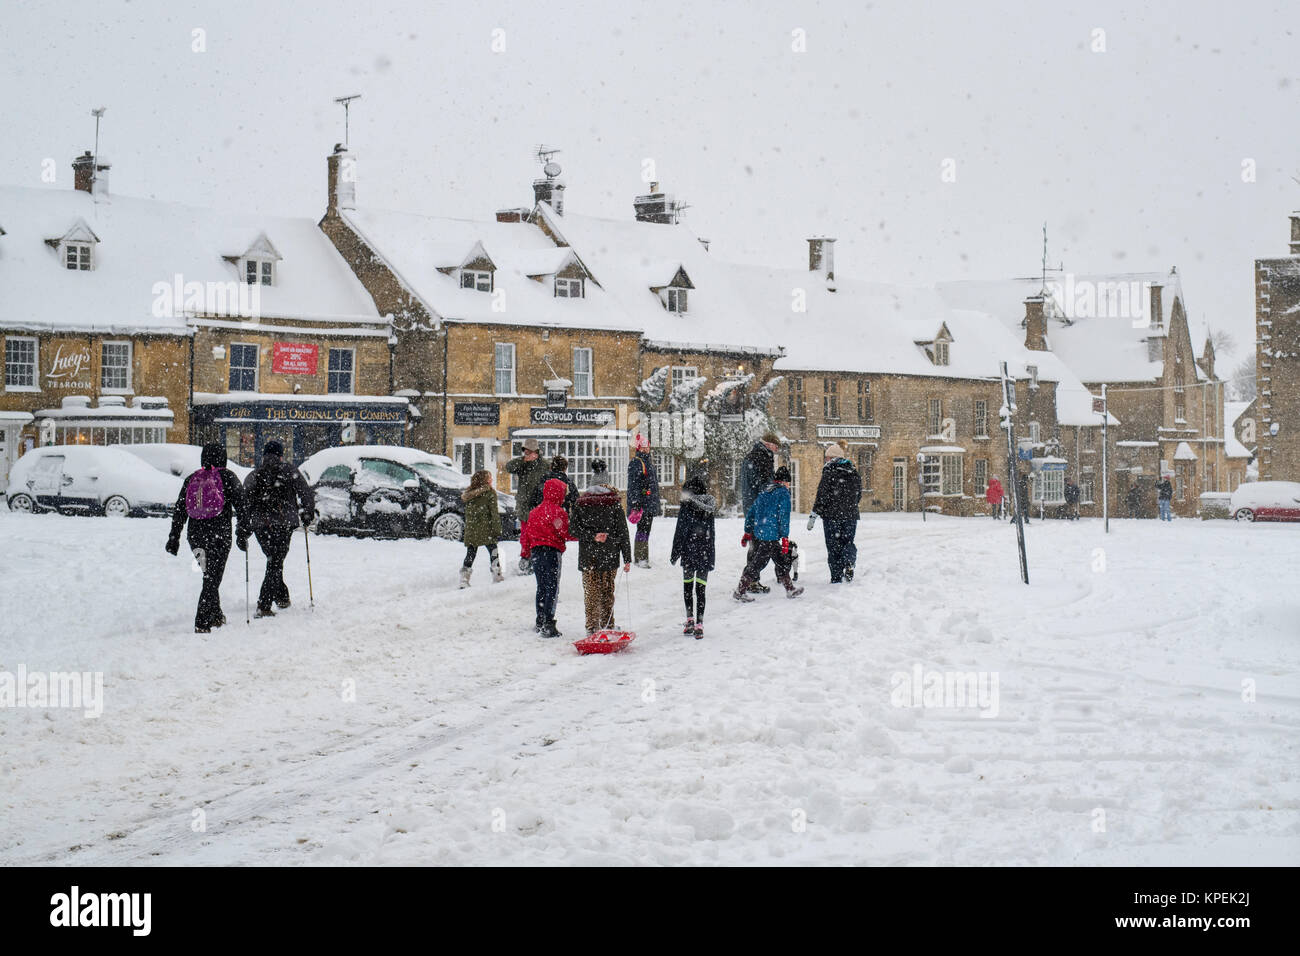 People walking through the market place at christmas time in the snow. Stow on the Wold, Cotswolds, Gloucestershire, - Stock Image